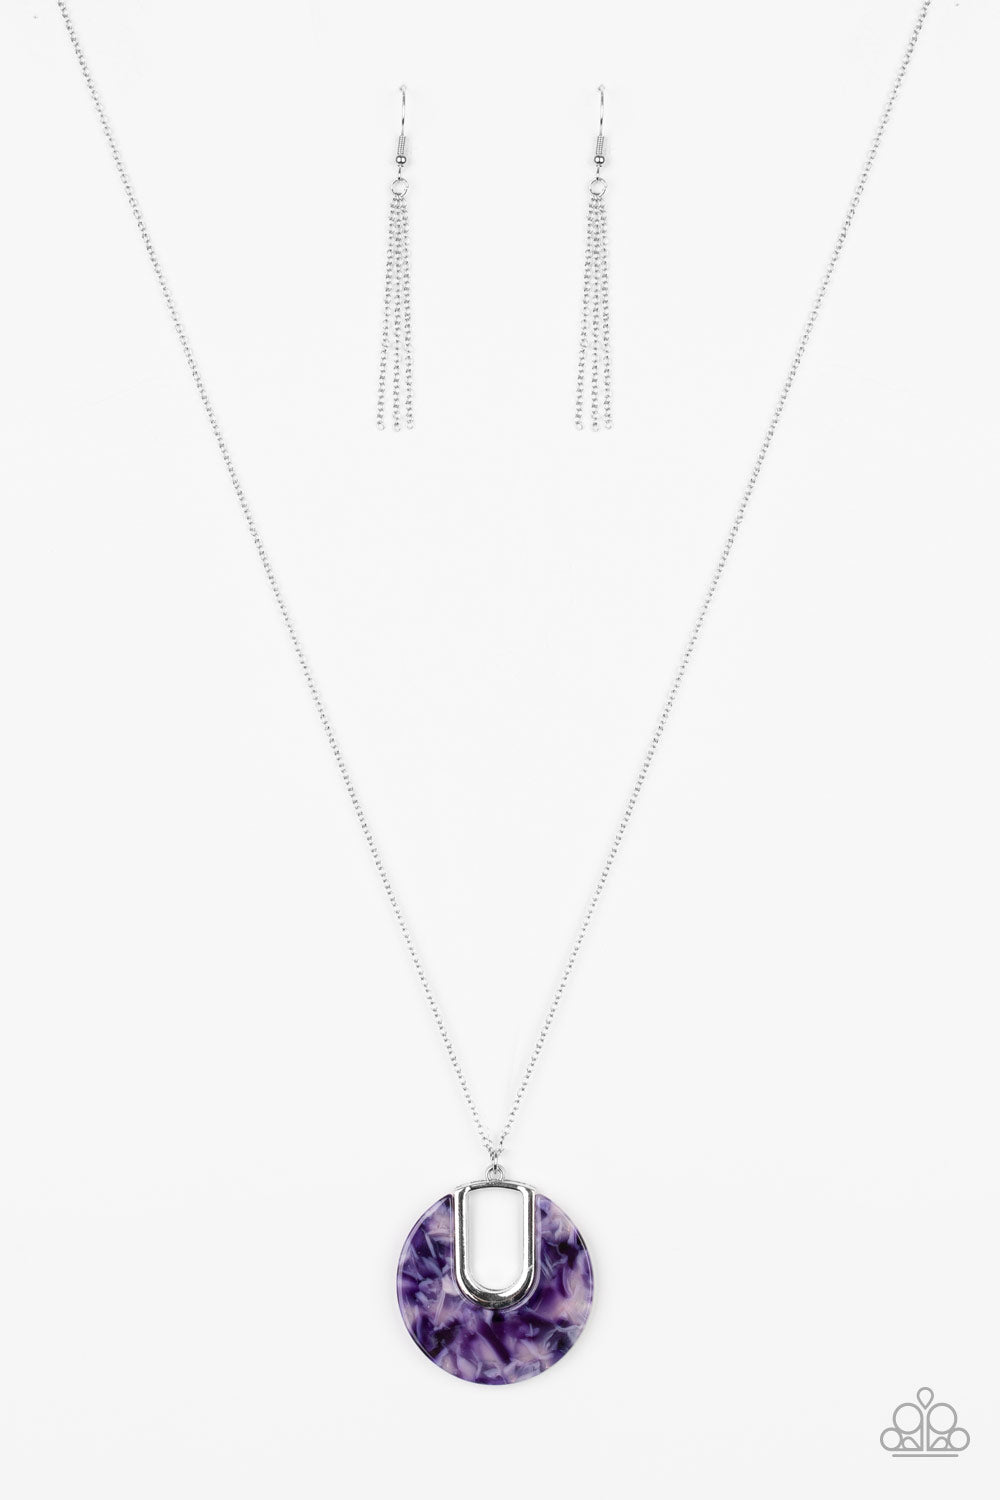 Paparazzi Necklace - Setting The Fashion - Purple